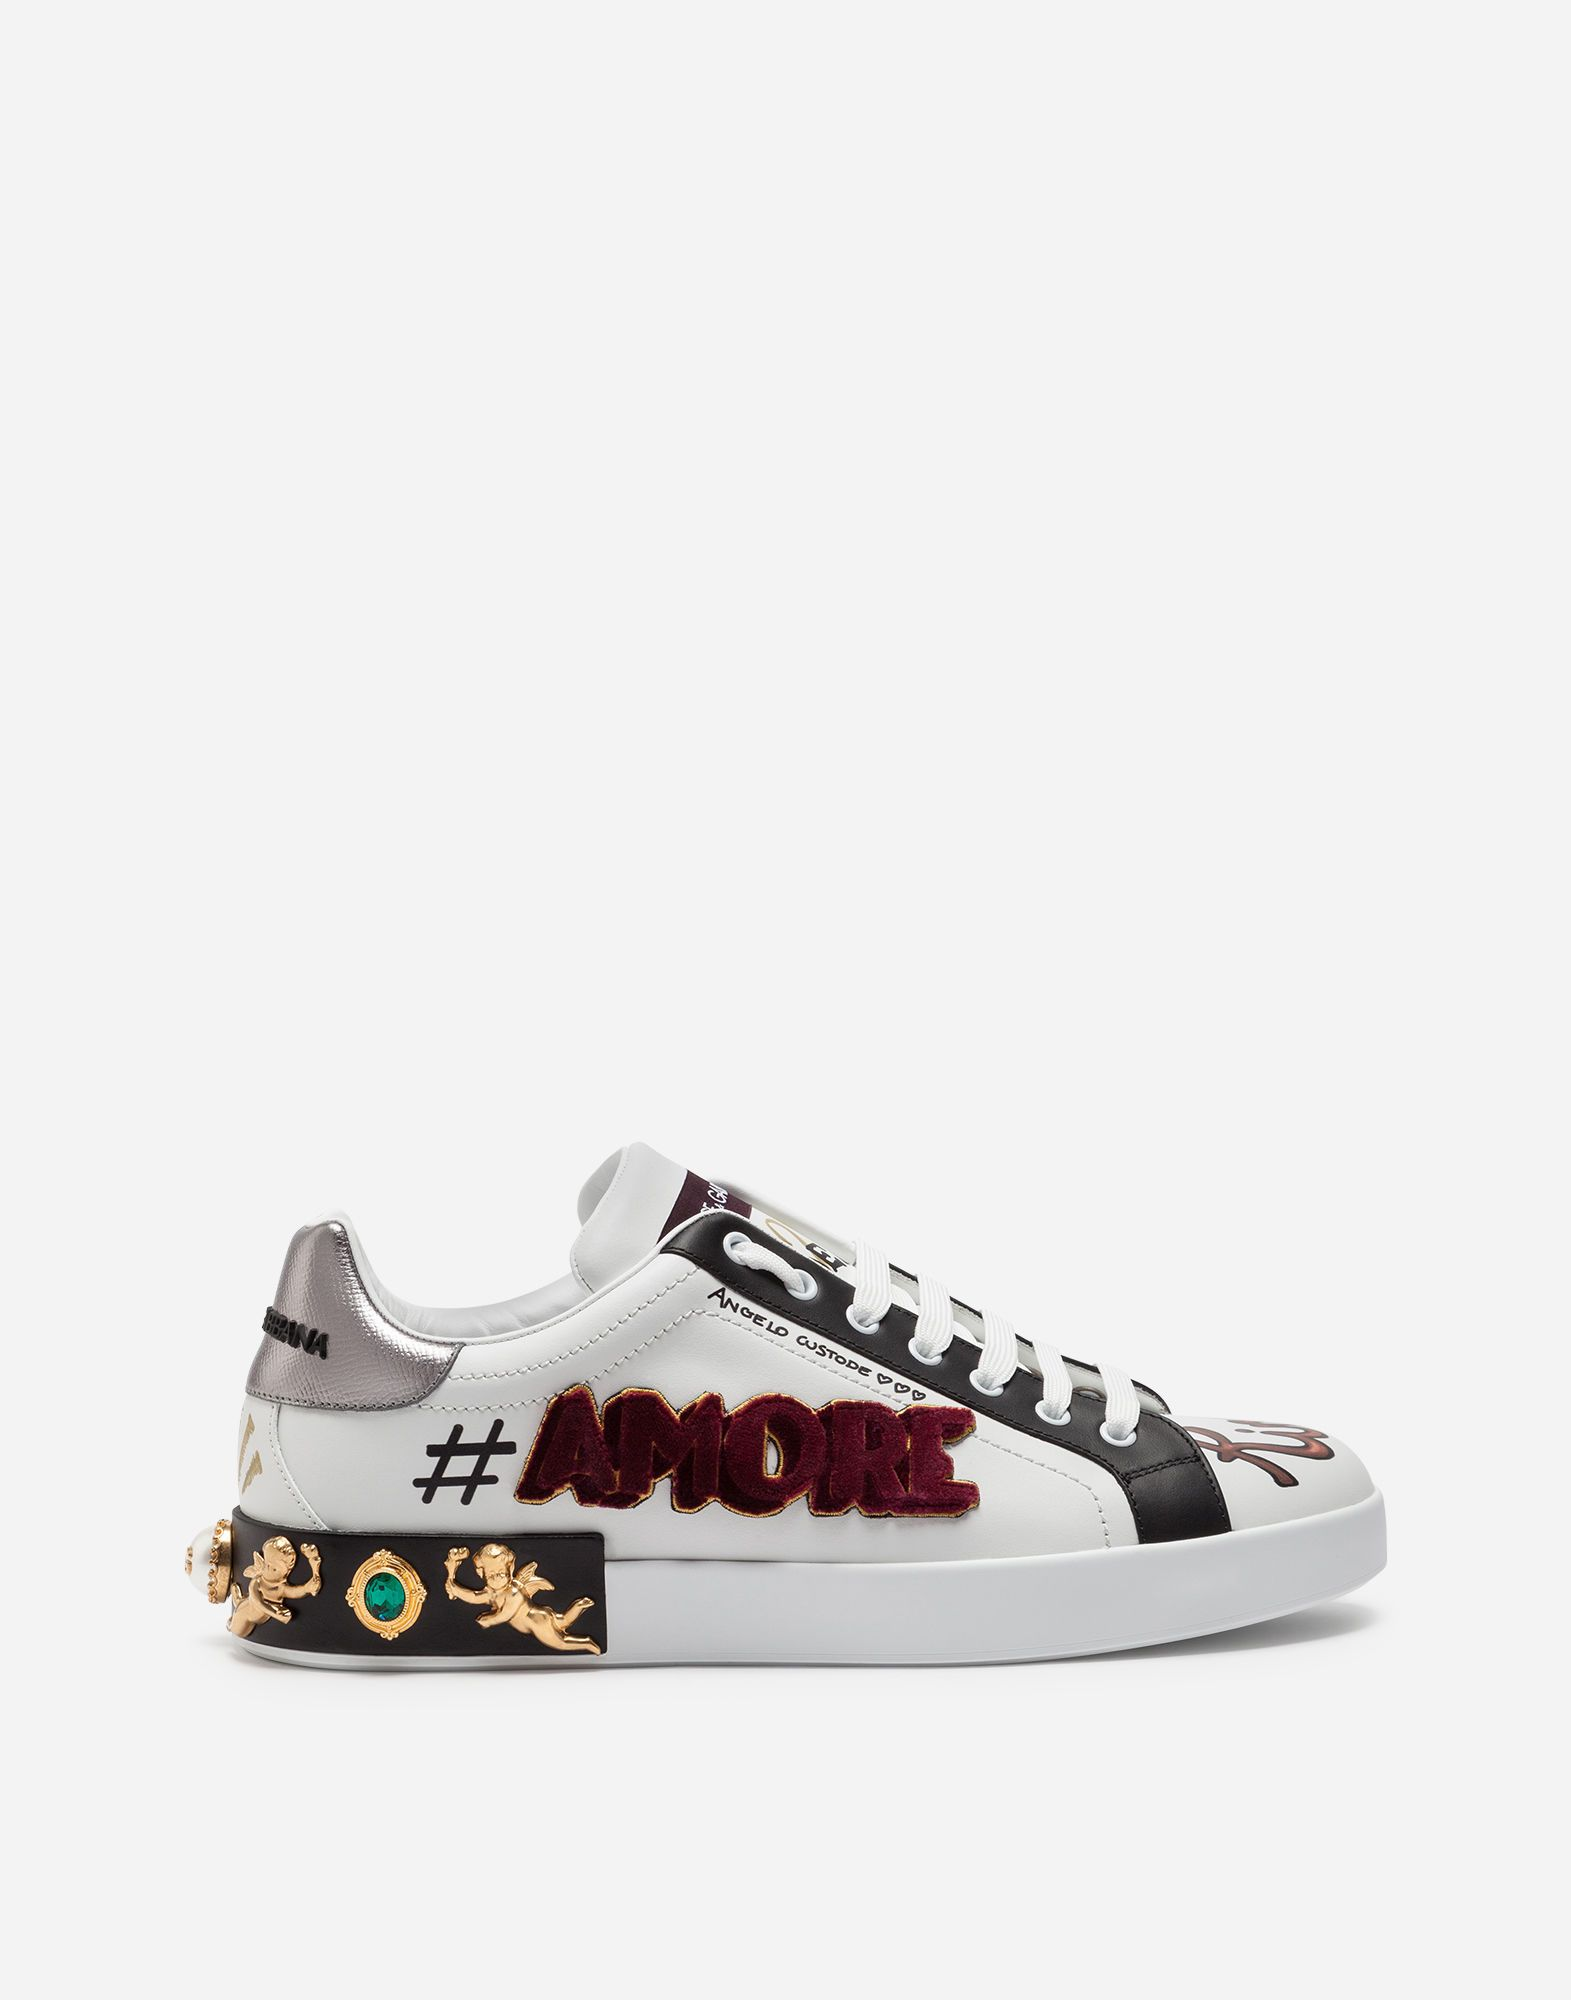 23a59ca90 DOLCE & GABBANA PORTOFINO SNEAKERS IN PRINTED CALFSKIN WITH PATCH AND  APPLIQUÉS. #dolcegabbana #shoes #